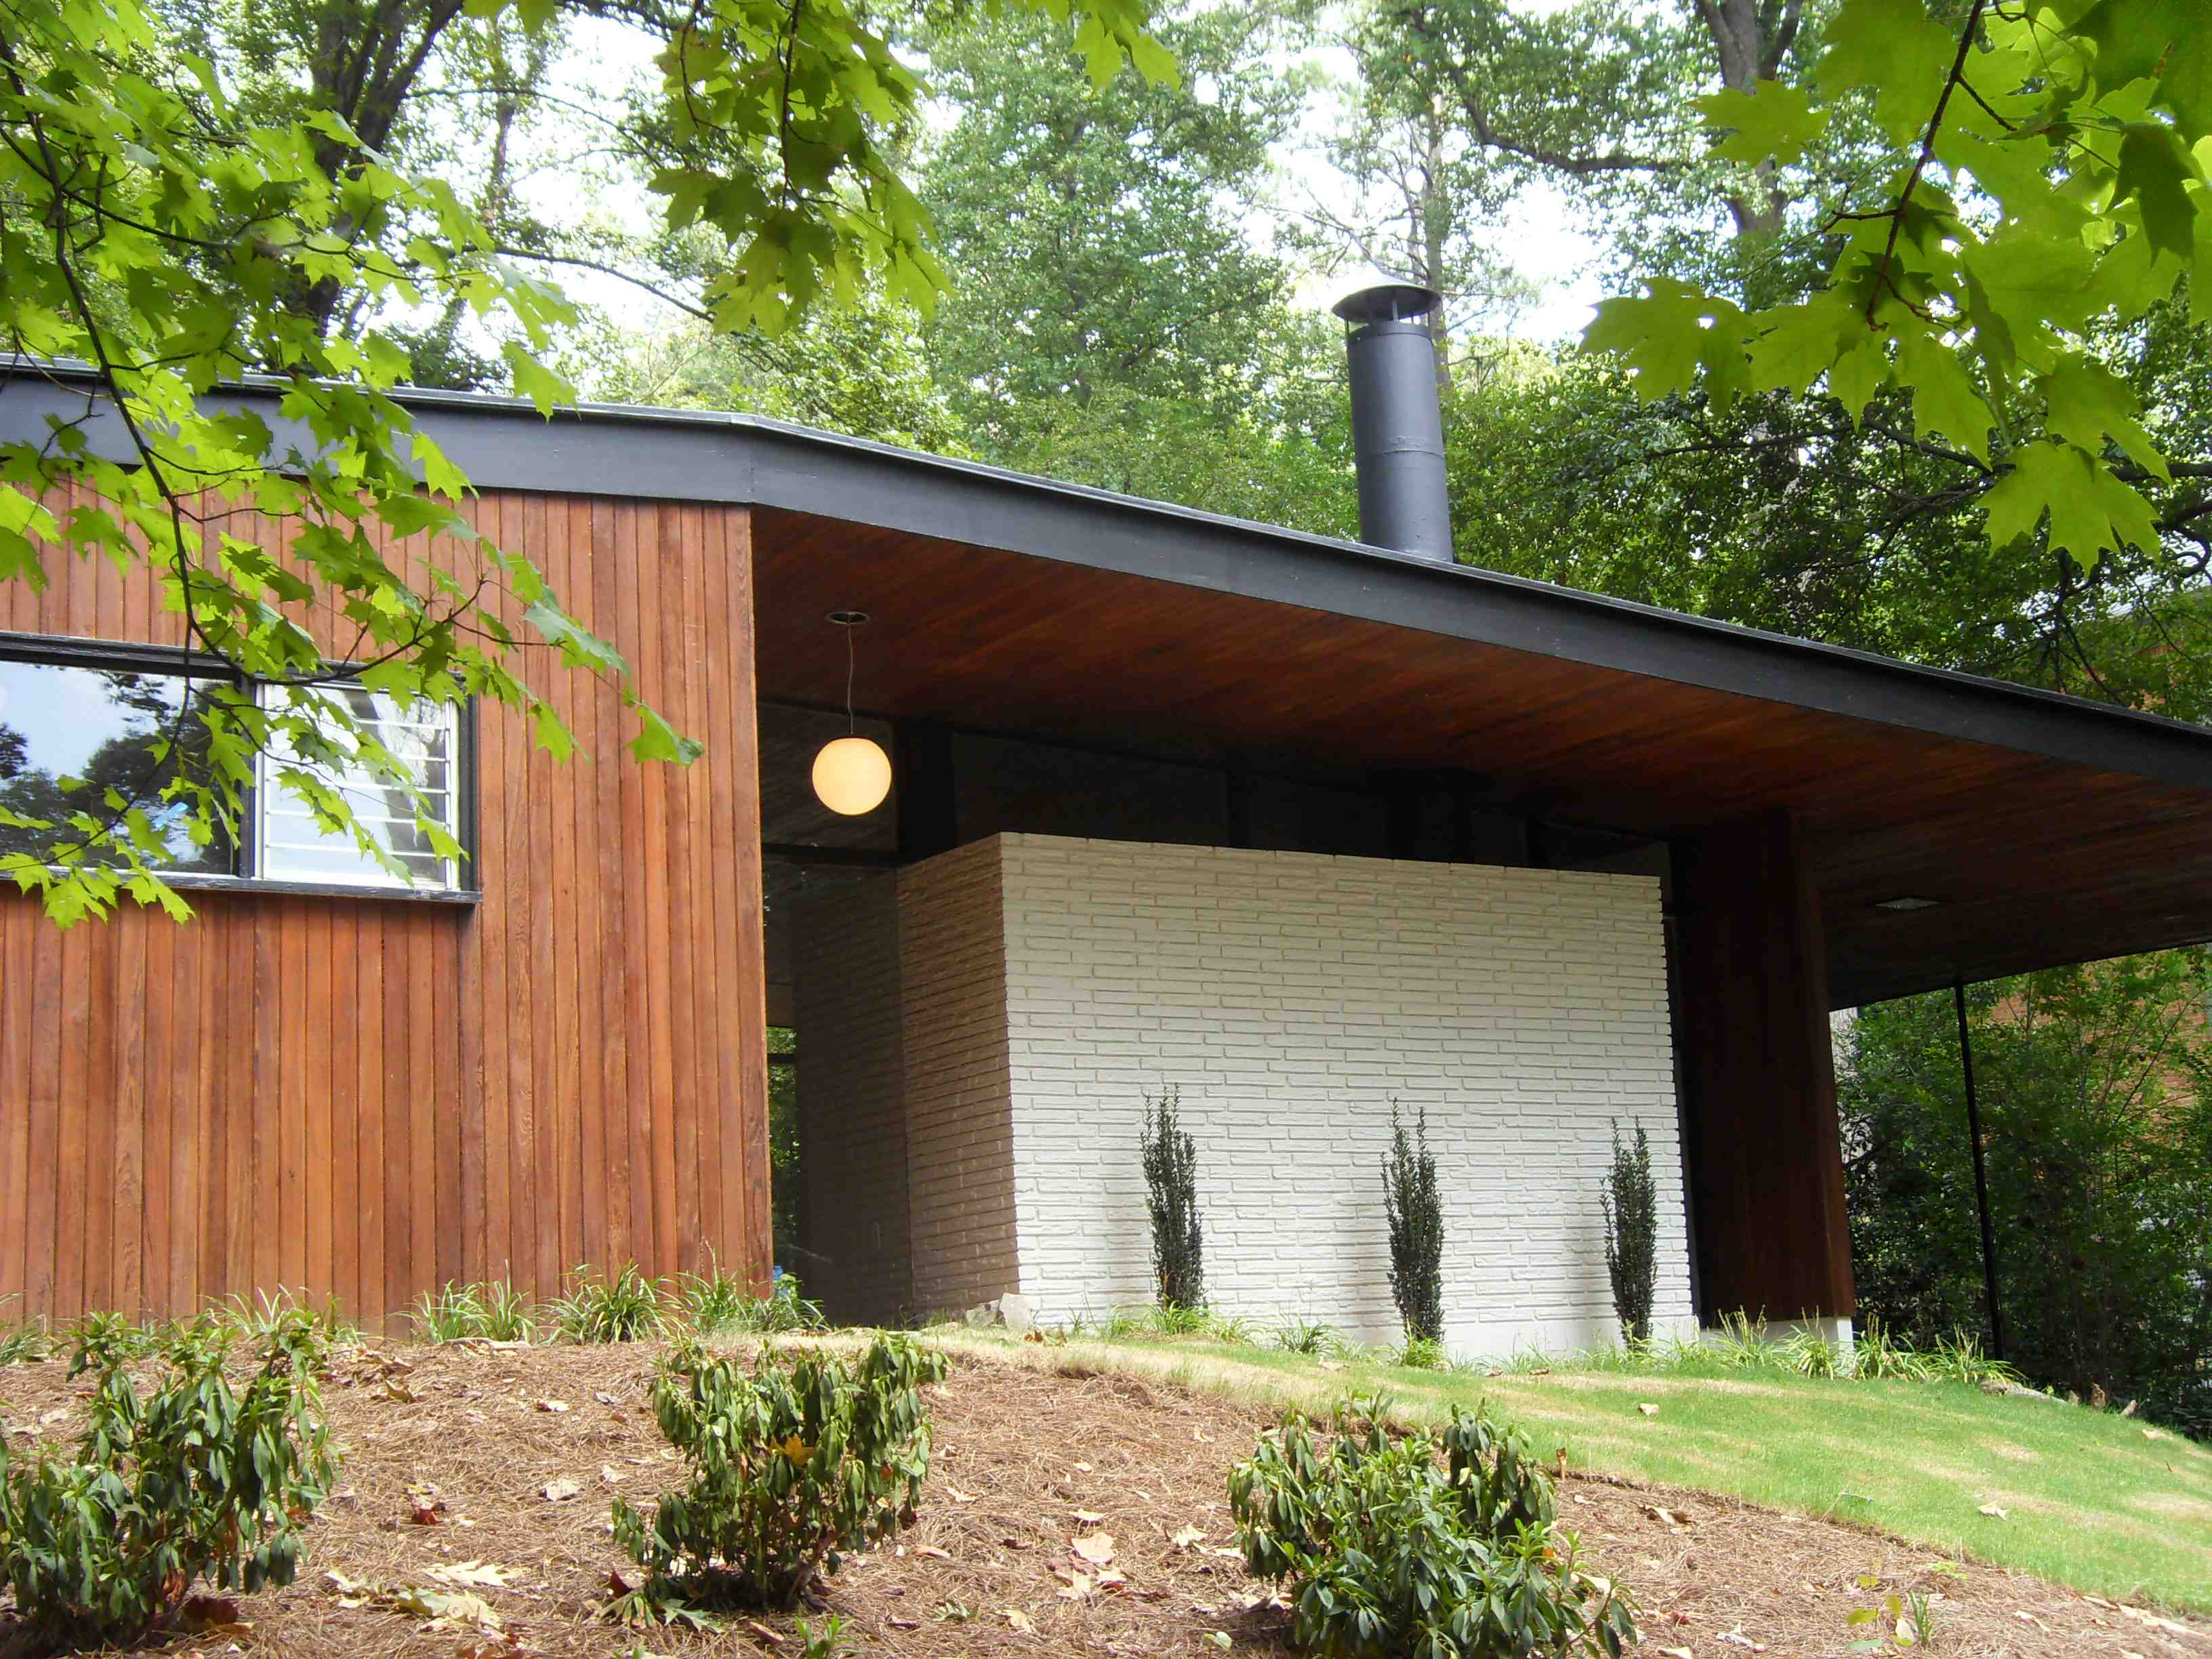 Modern atlanta homes for sale archives domorealty New modern houses for sale